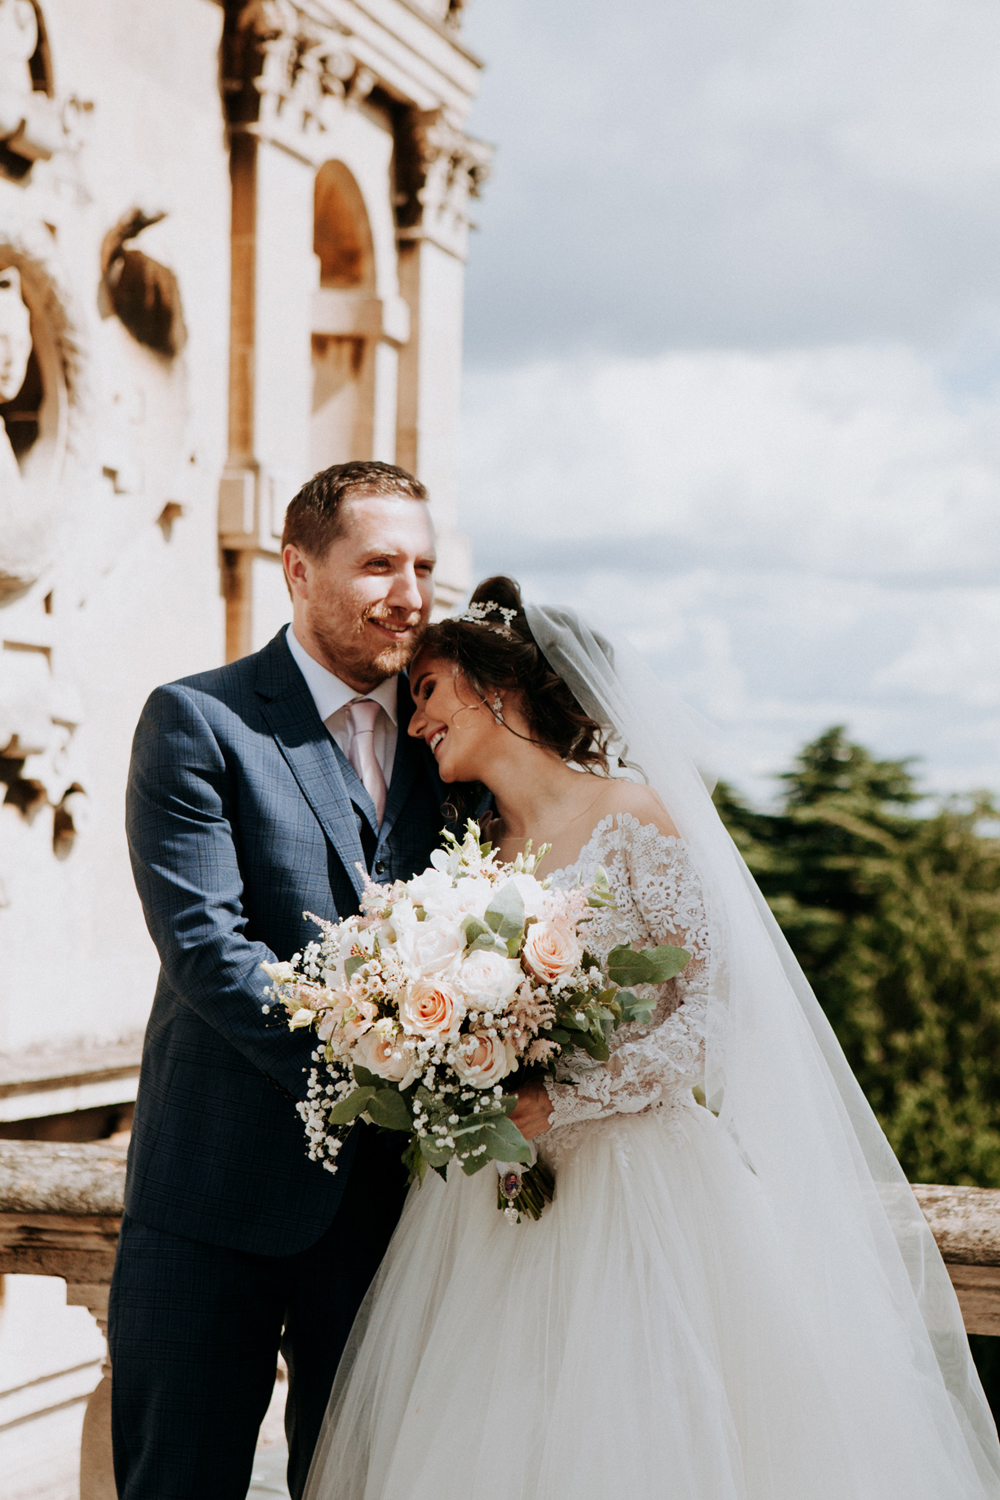 Nottingham City & Wollaton Hall Wedding